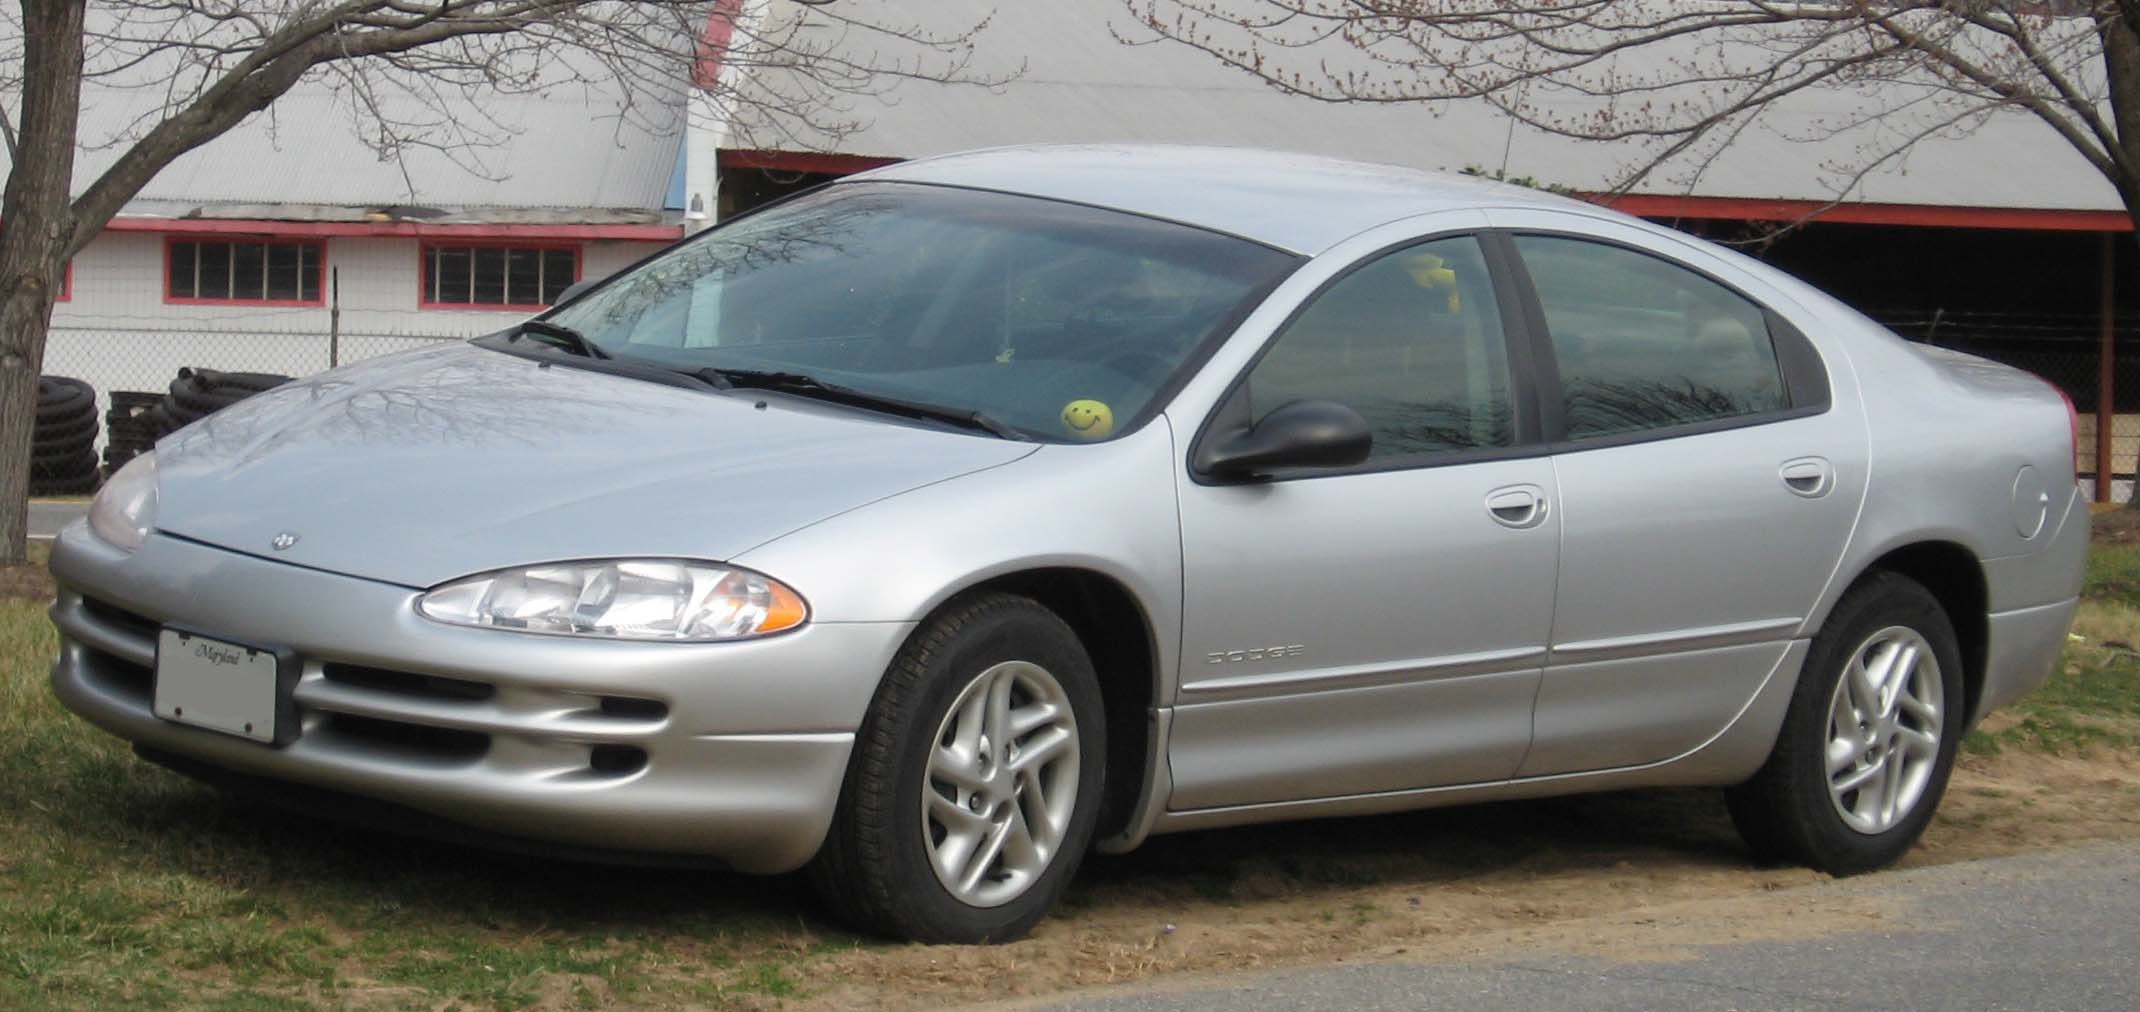 98-04_Dodge_Intrepid.jpg